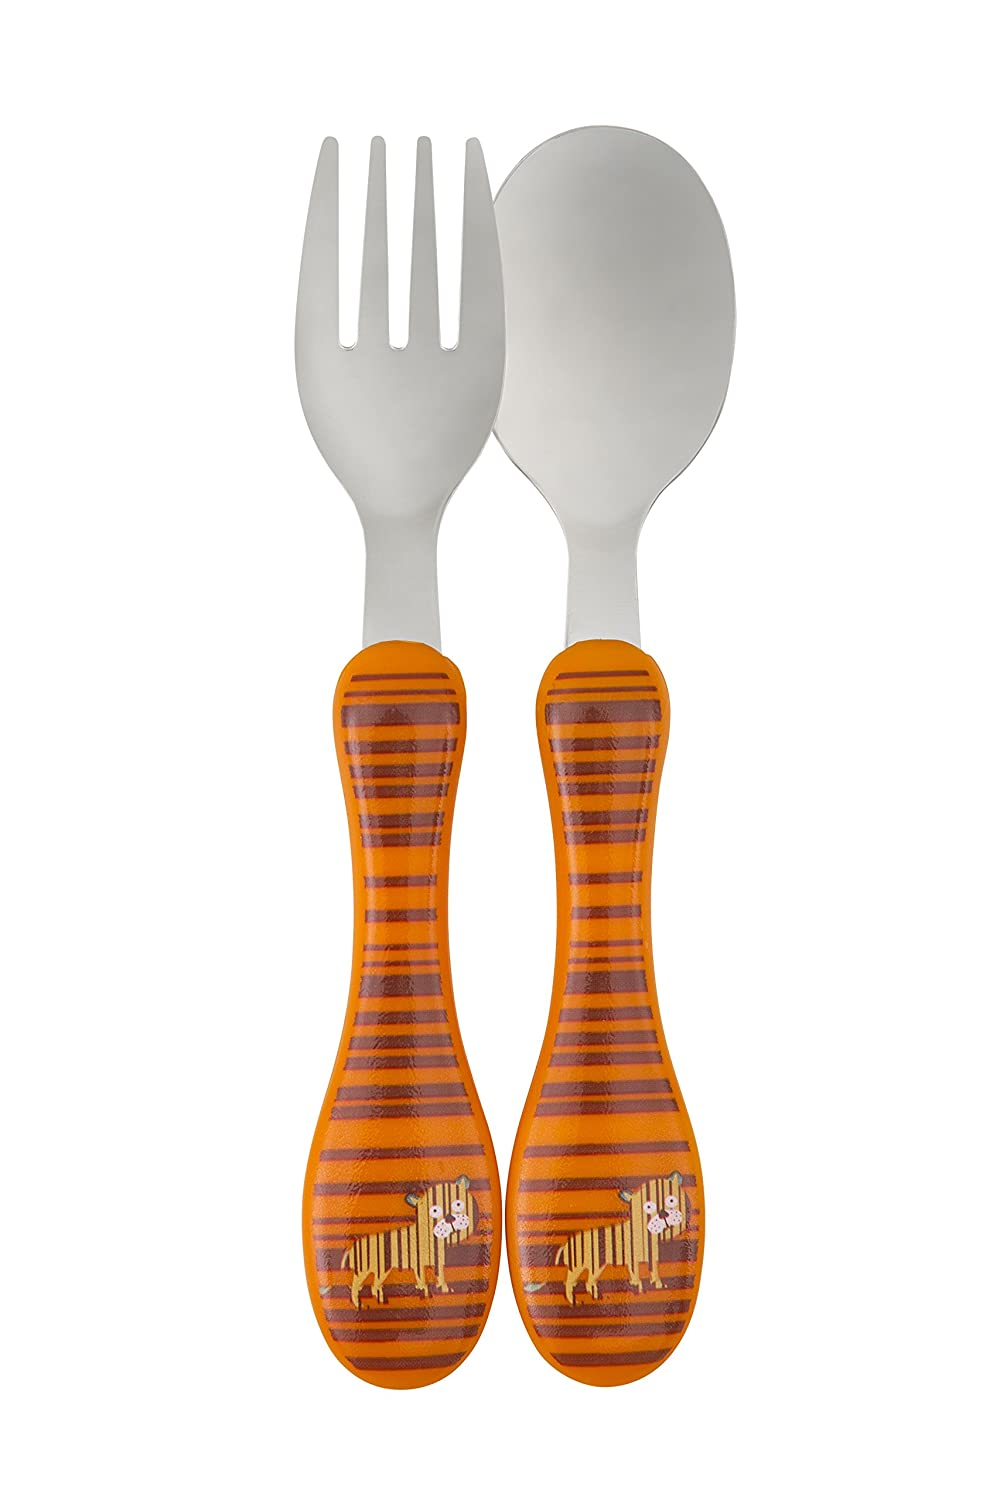 Lassig Kids 2 Set Stainless Steel Cutlery Fork and Spoon Utensil Set with Case, Wildlife Tiger LDISHCU189